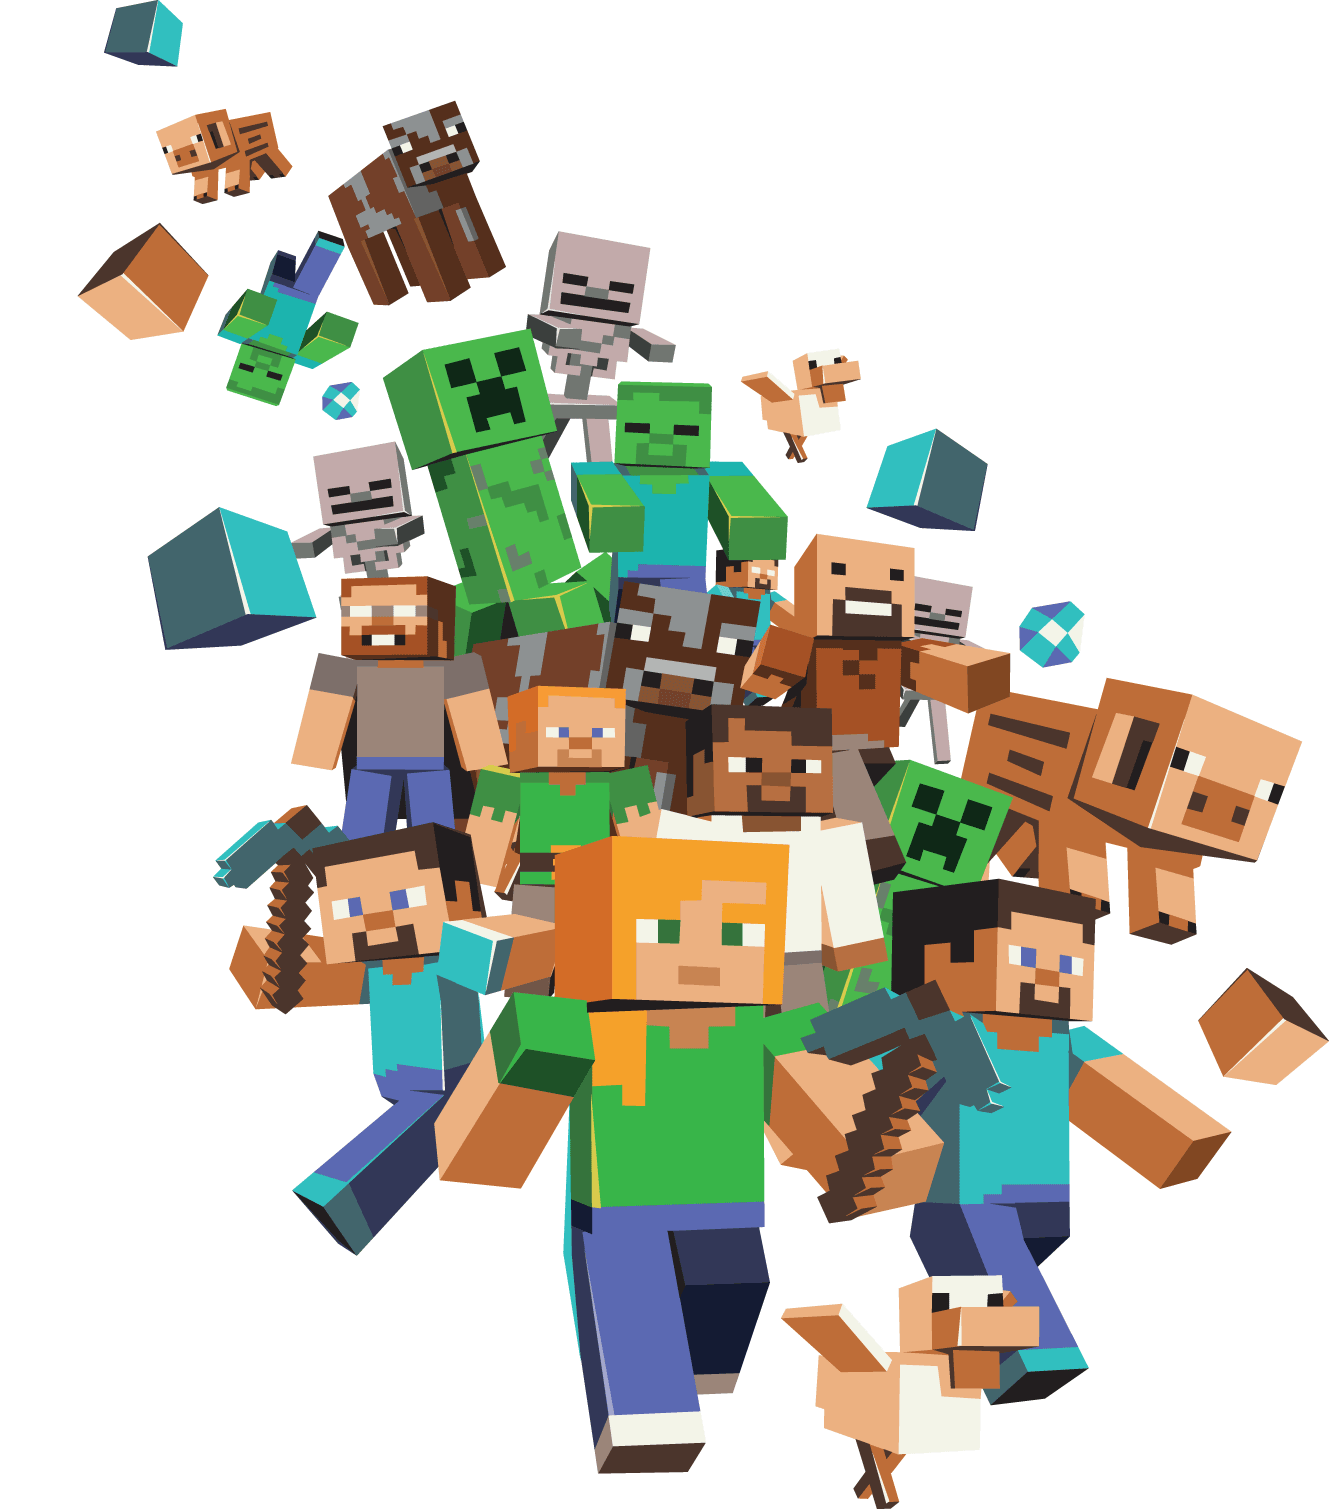 minecraft background png